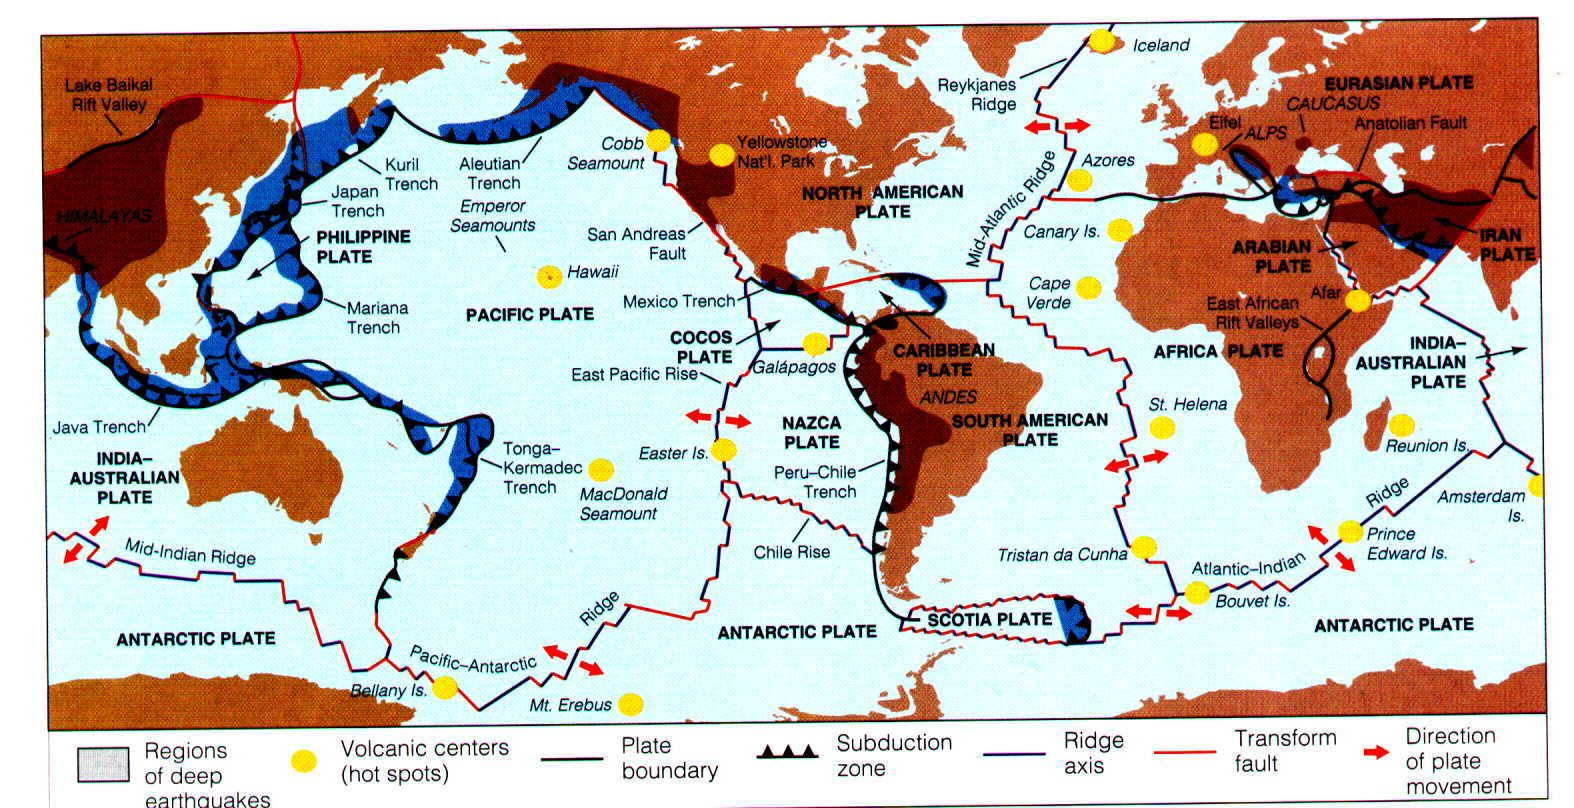 Theory of plate tectonics the slow shifting of the continents and theory of plate tectonics the slow shifting of the continents and the ocean floors the earths outer shell is composed of huge plates that fit together gumiabroncs Gallery